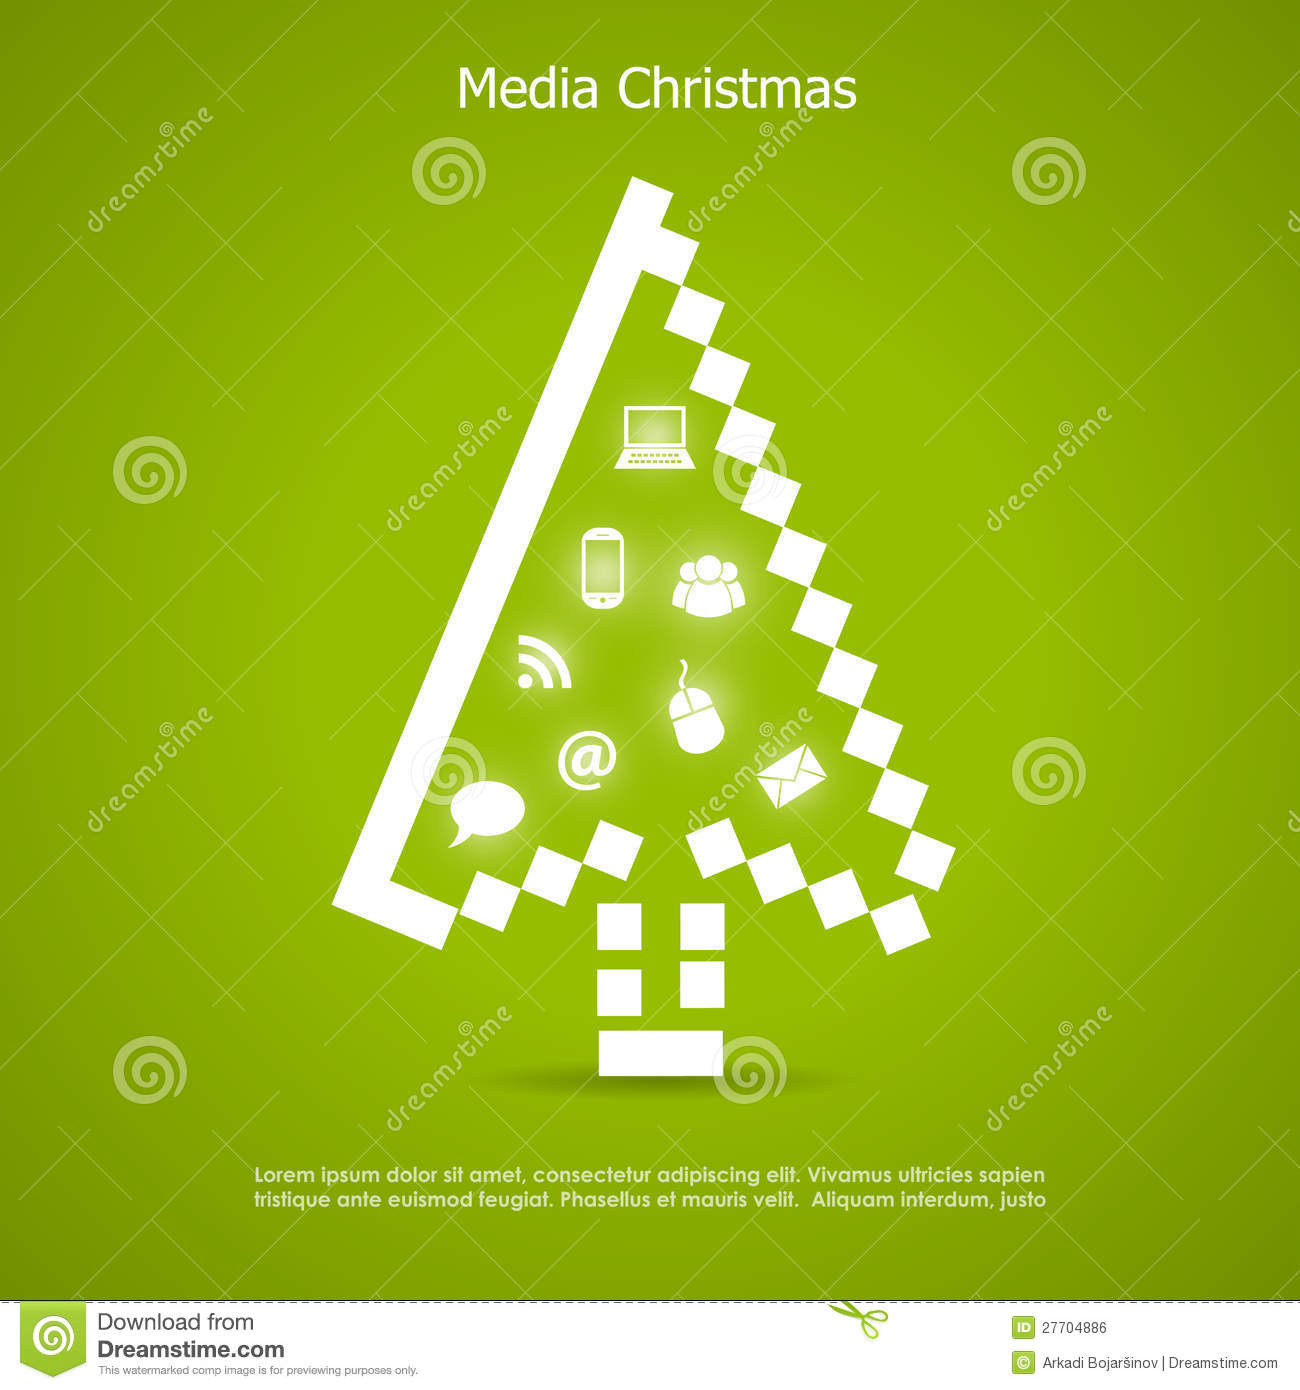 Merry Christmas Card Royalty Free Stock Image - Image: 27704886